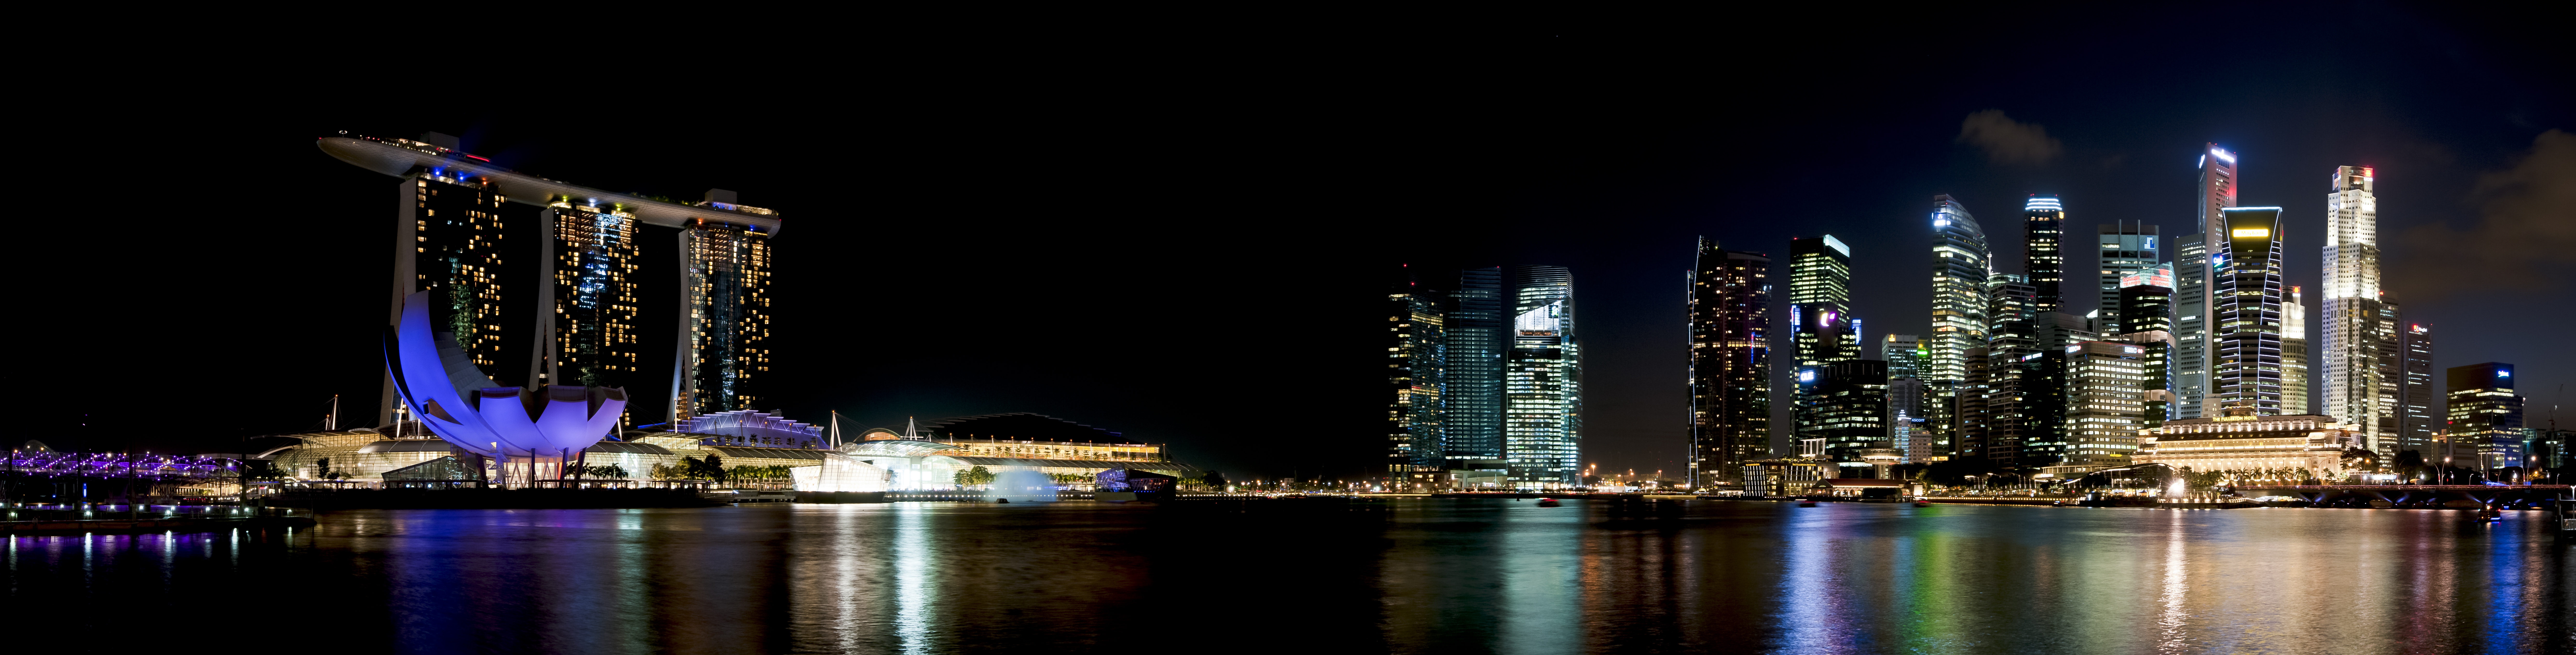 https://upload.wikimedia.org/wikipedia/commons/3/3c/1_marina_bay_night_2012.jpg